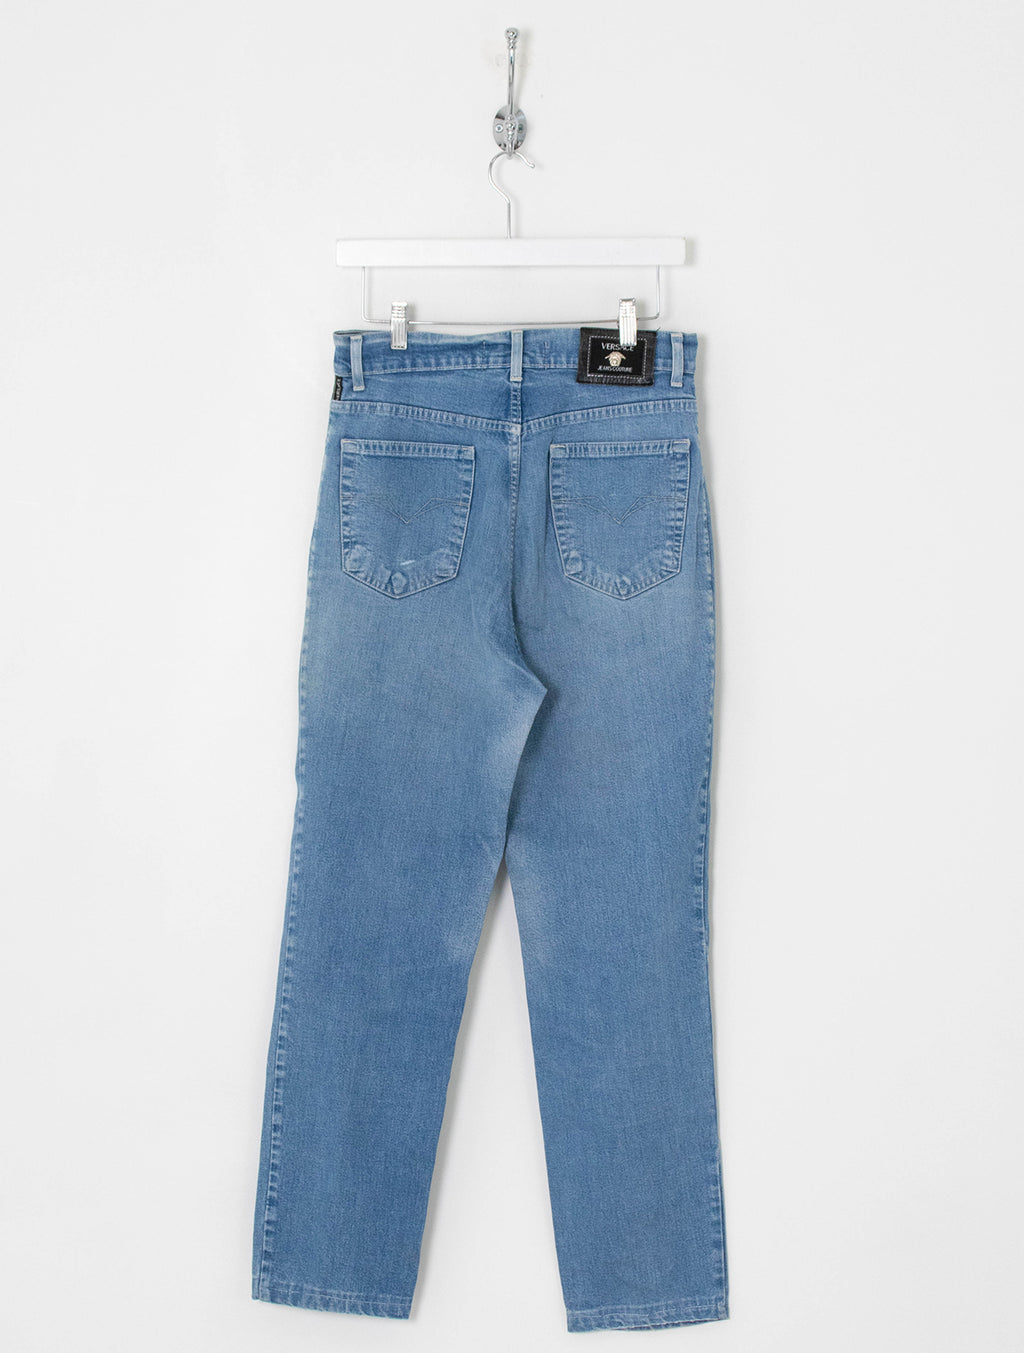 "Versace Denim Jeans (28"")"